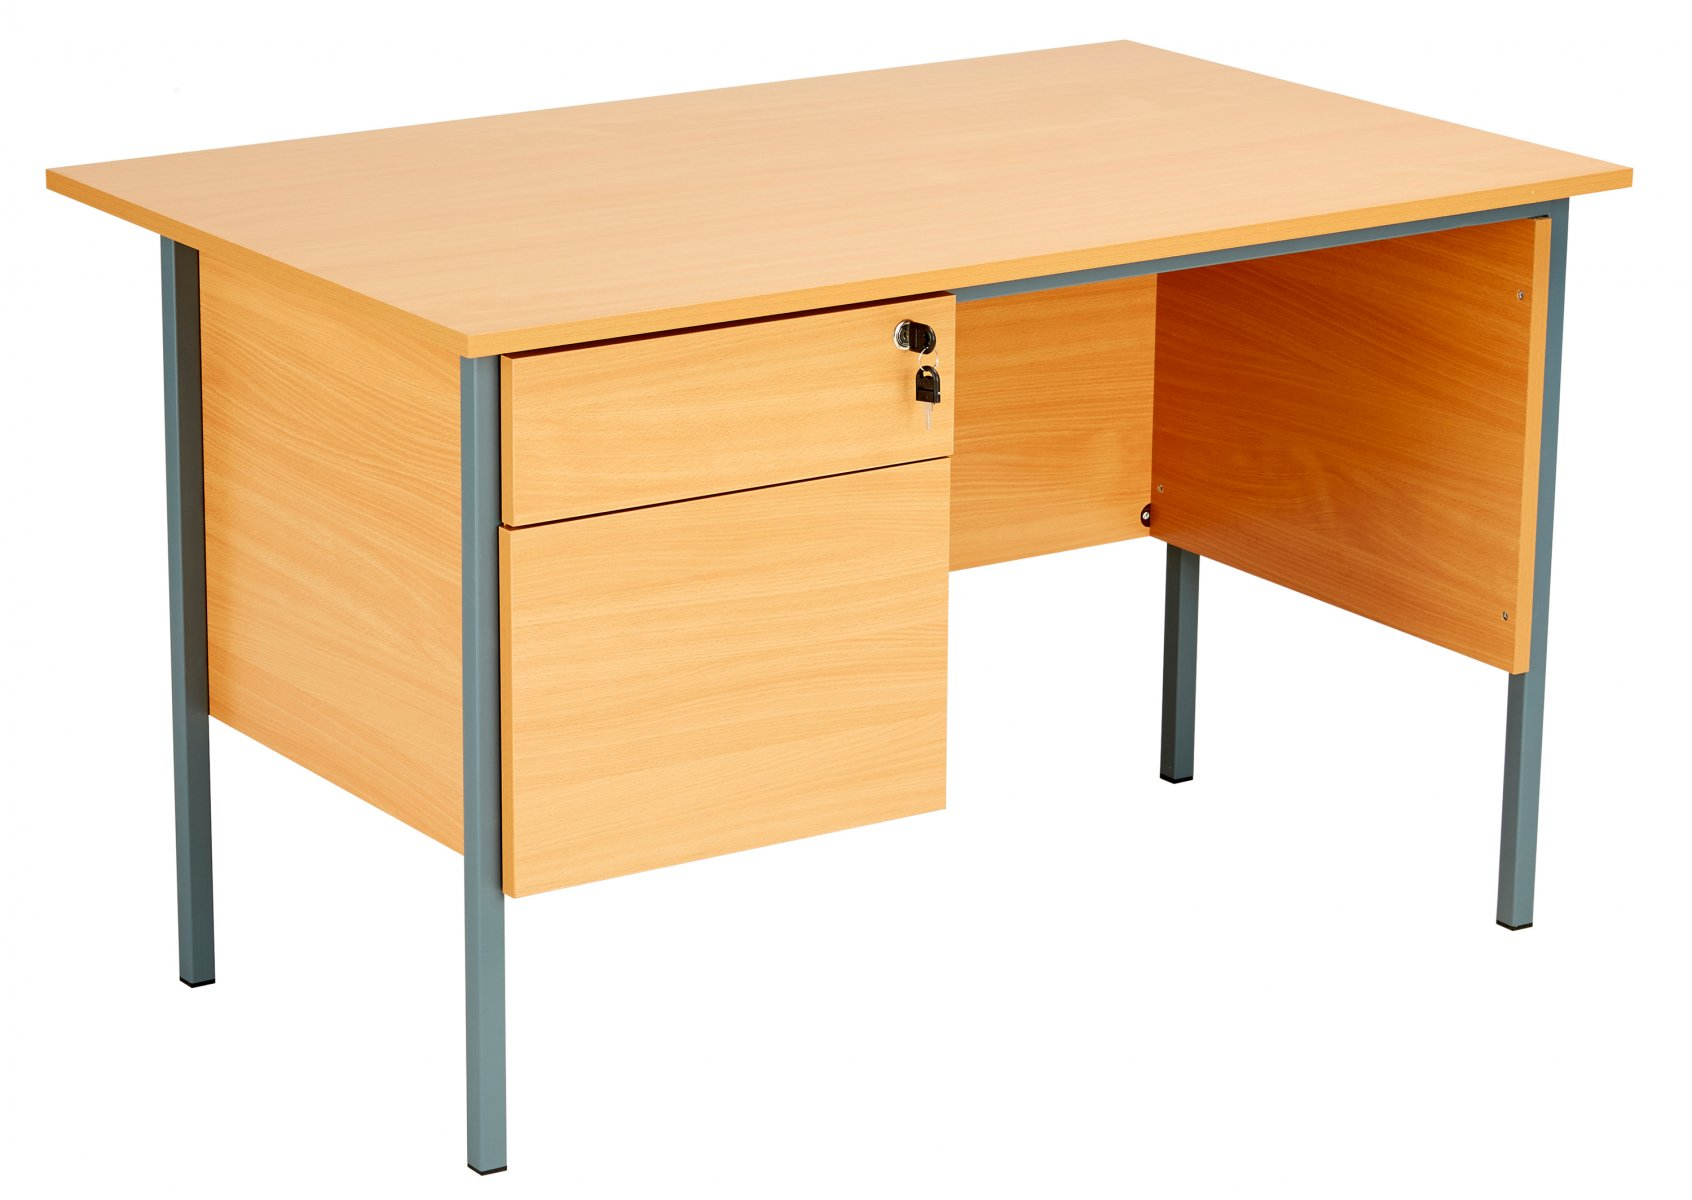 Eco 18 Rectangular 120 Desk with Single 2 Drawer Pedestal - Beech